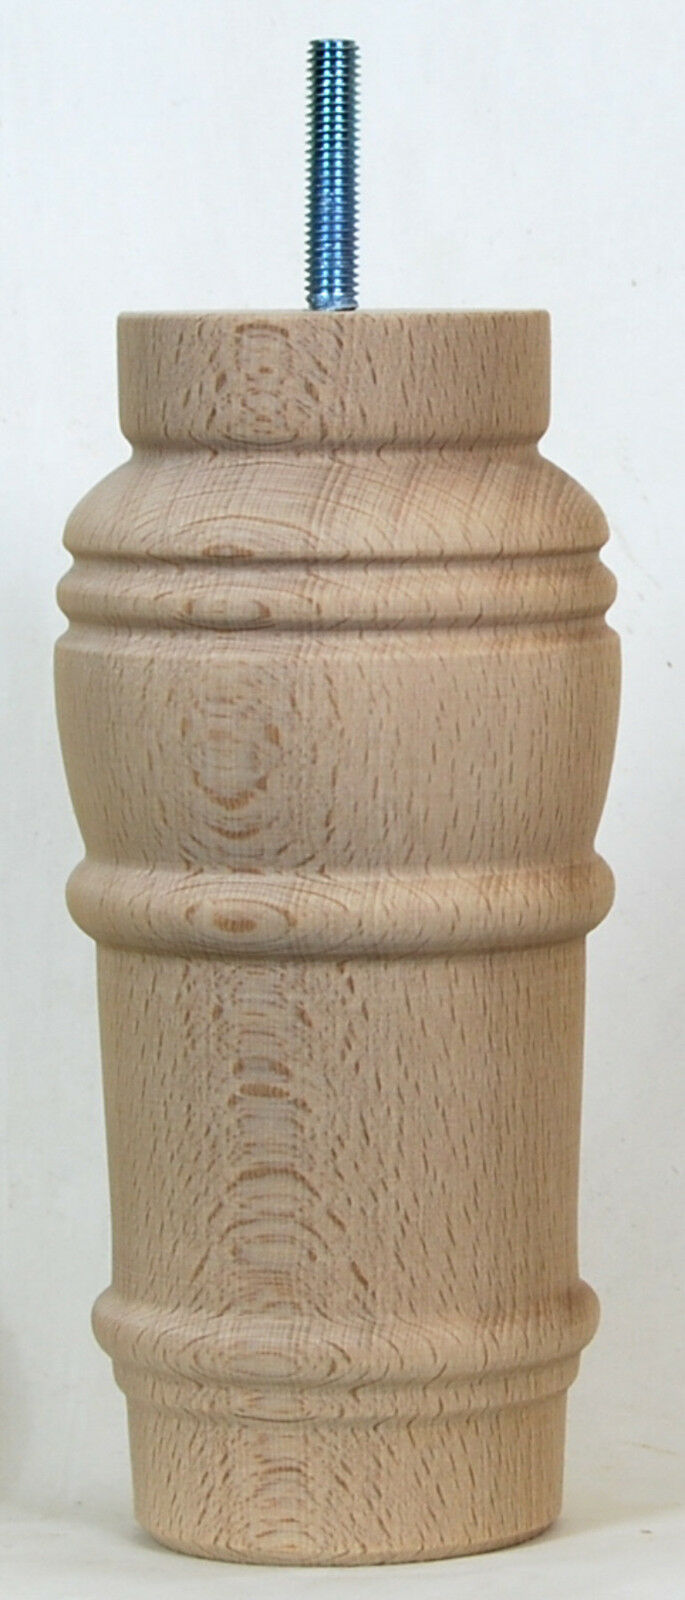 6 WOODEN FURNITURE LEGS, CHAIR LEG FEET, SOFA RISERS, WOODEN FOOTSTOOL LEGS E730